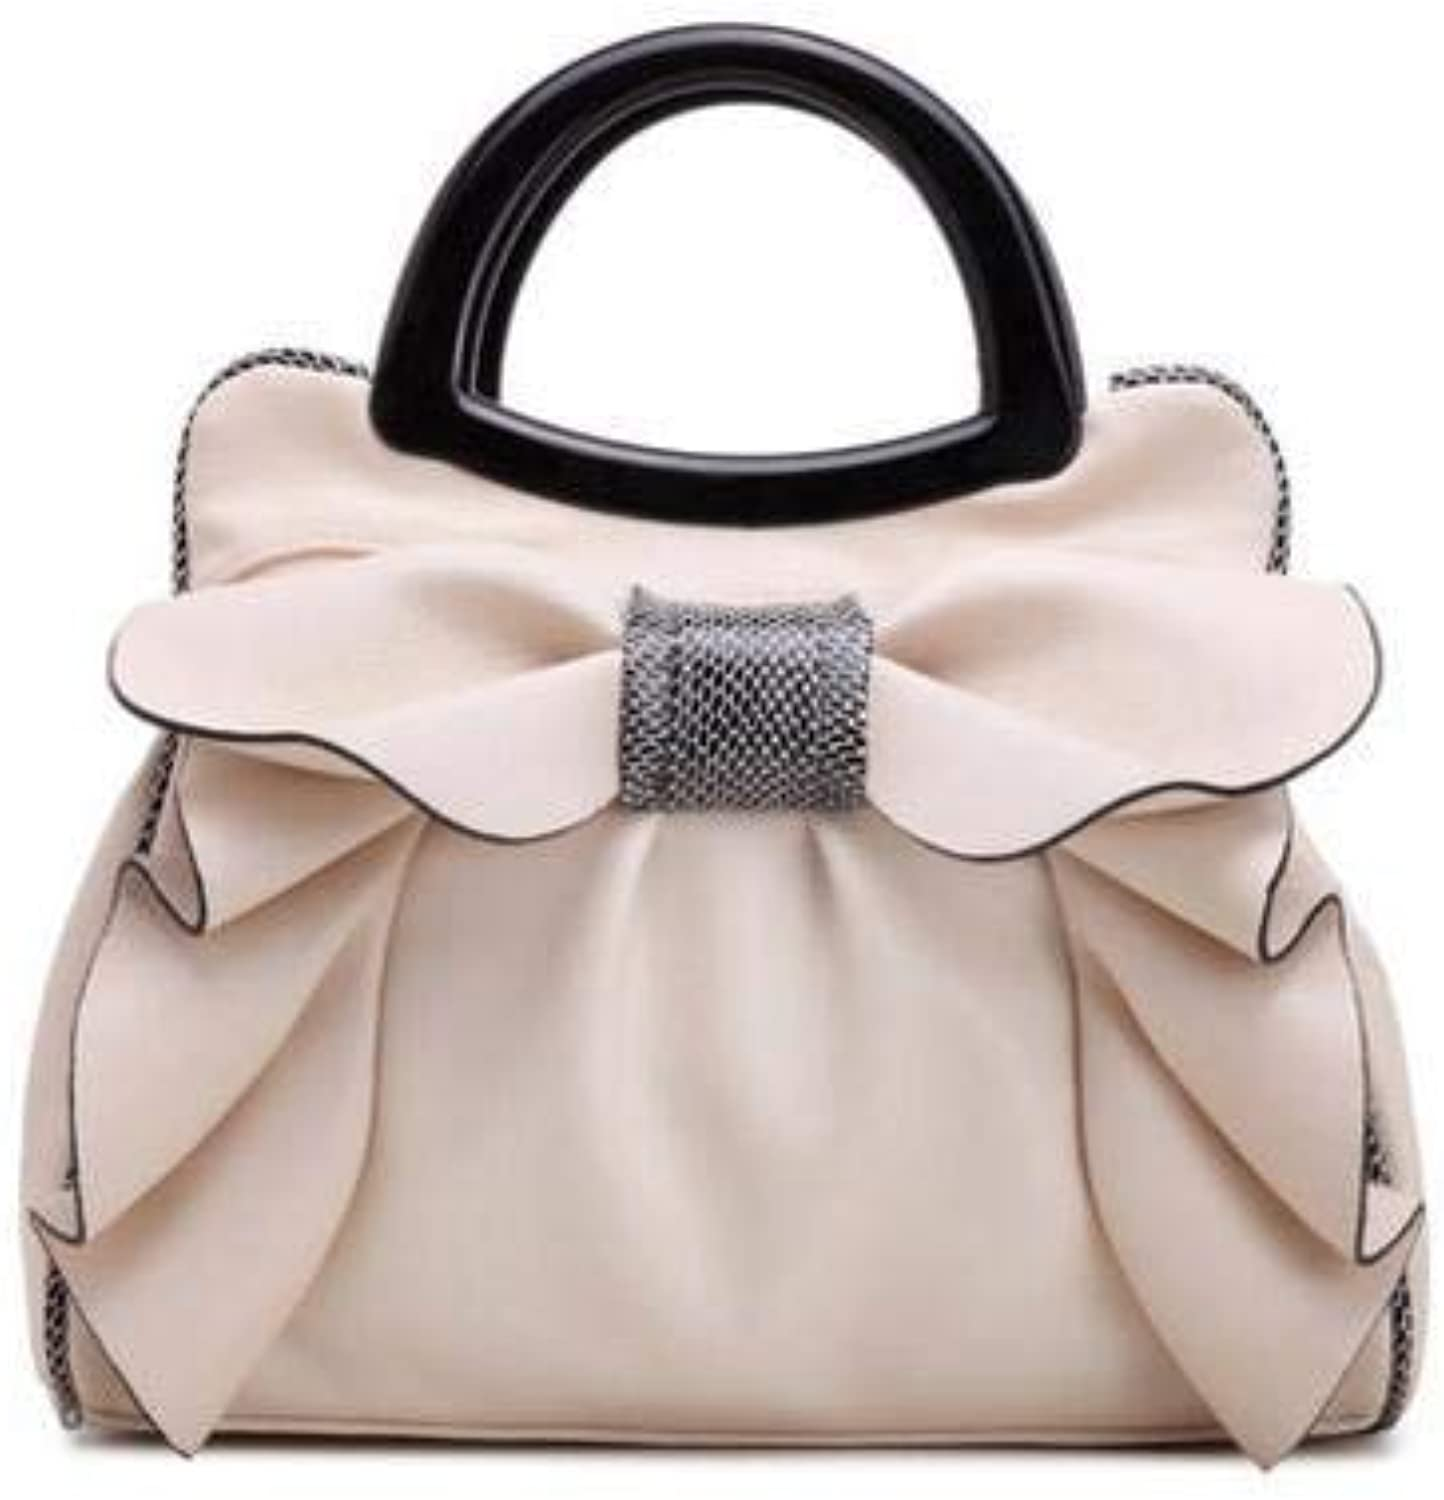 Handbags Fashion Brand top Handle Bags Women Girls Leather Bags Bow Luxury Women Tote Bag Bow Ladies Hand Bag color Beige